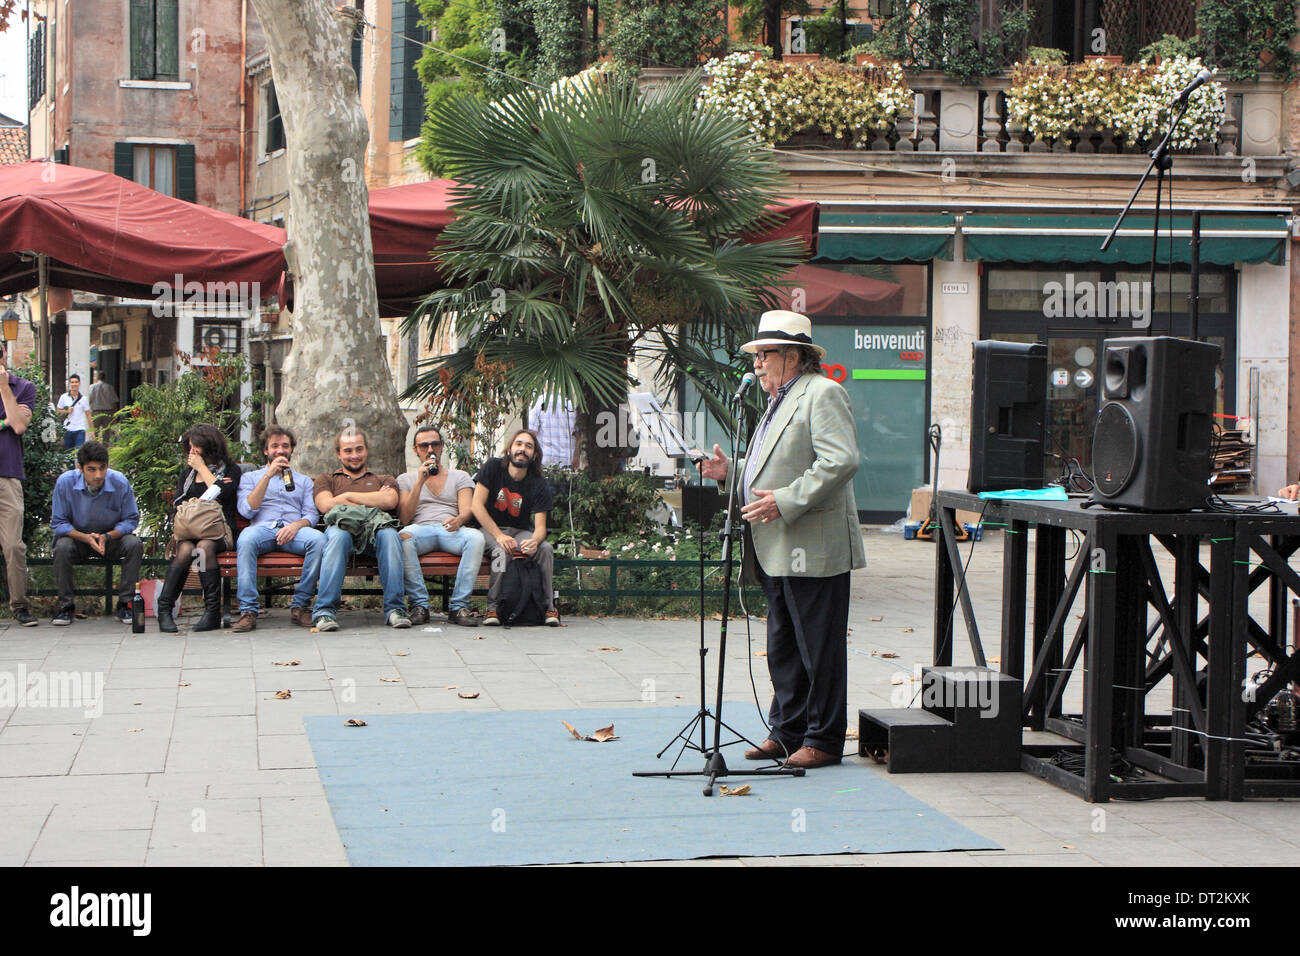 '100 Thousand Poets for Change' 2013 in Venice - Stock Image